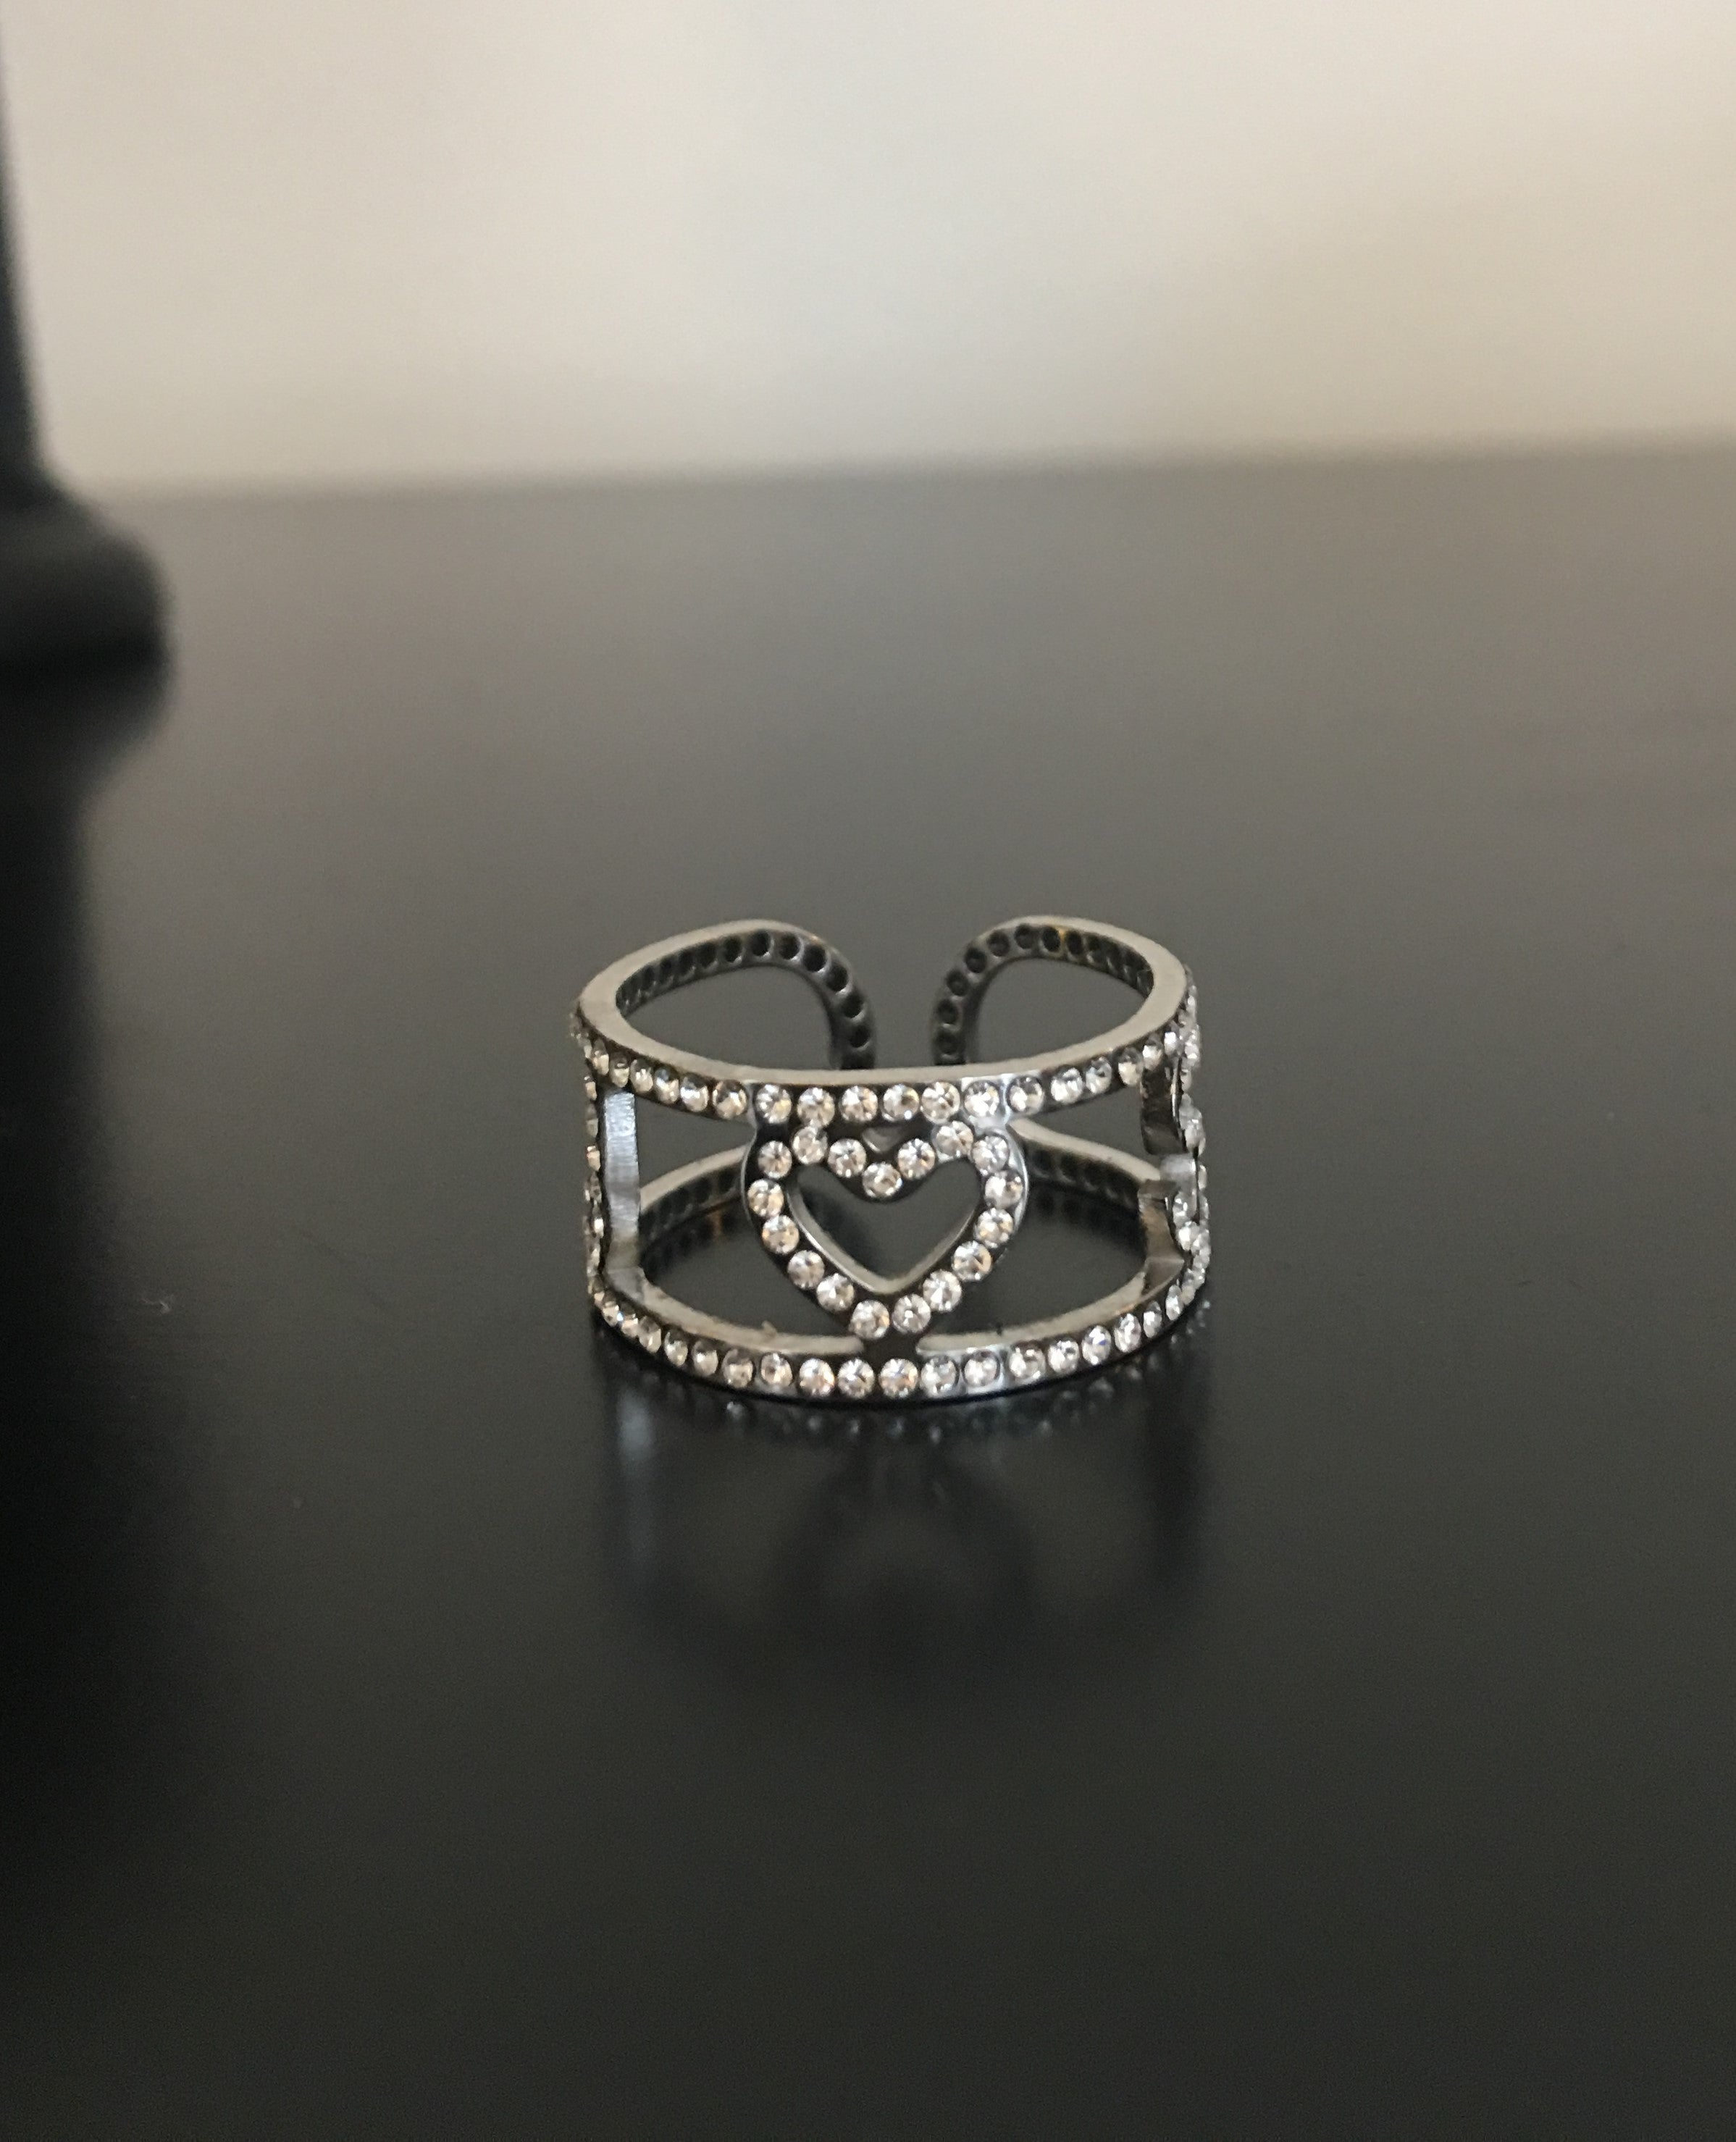 2 initial, diamond initial ring